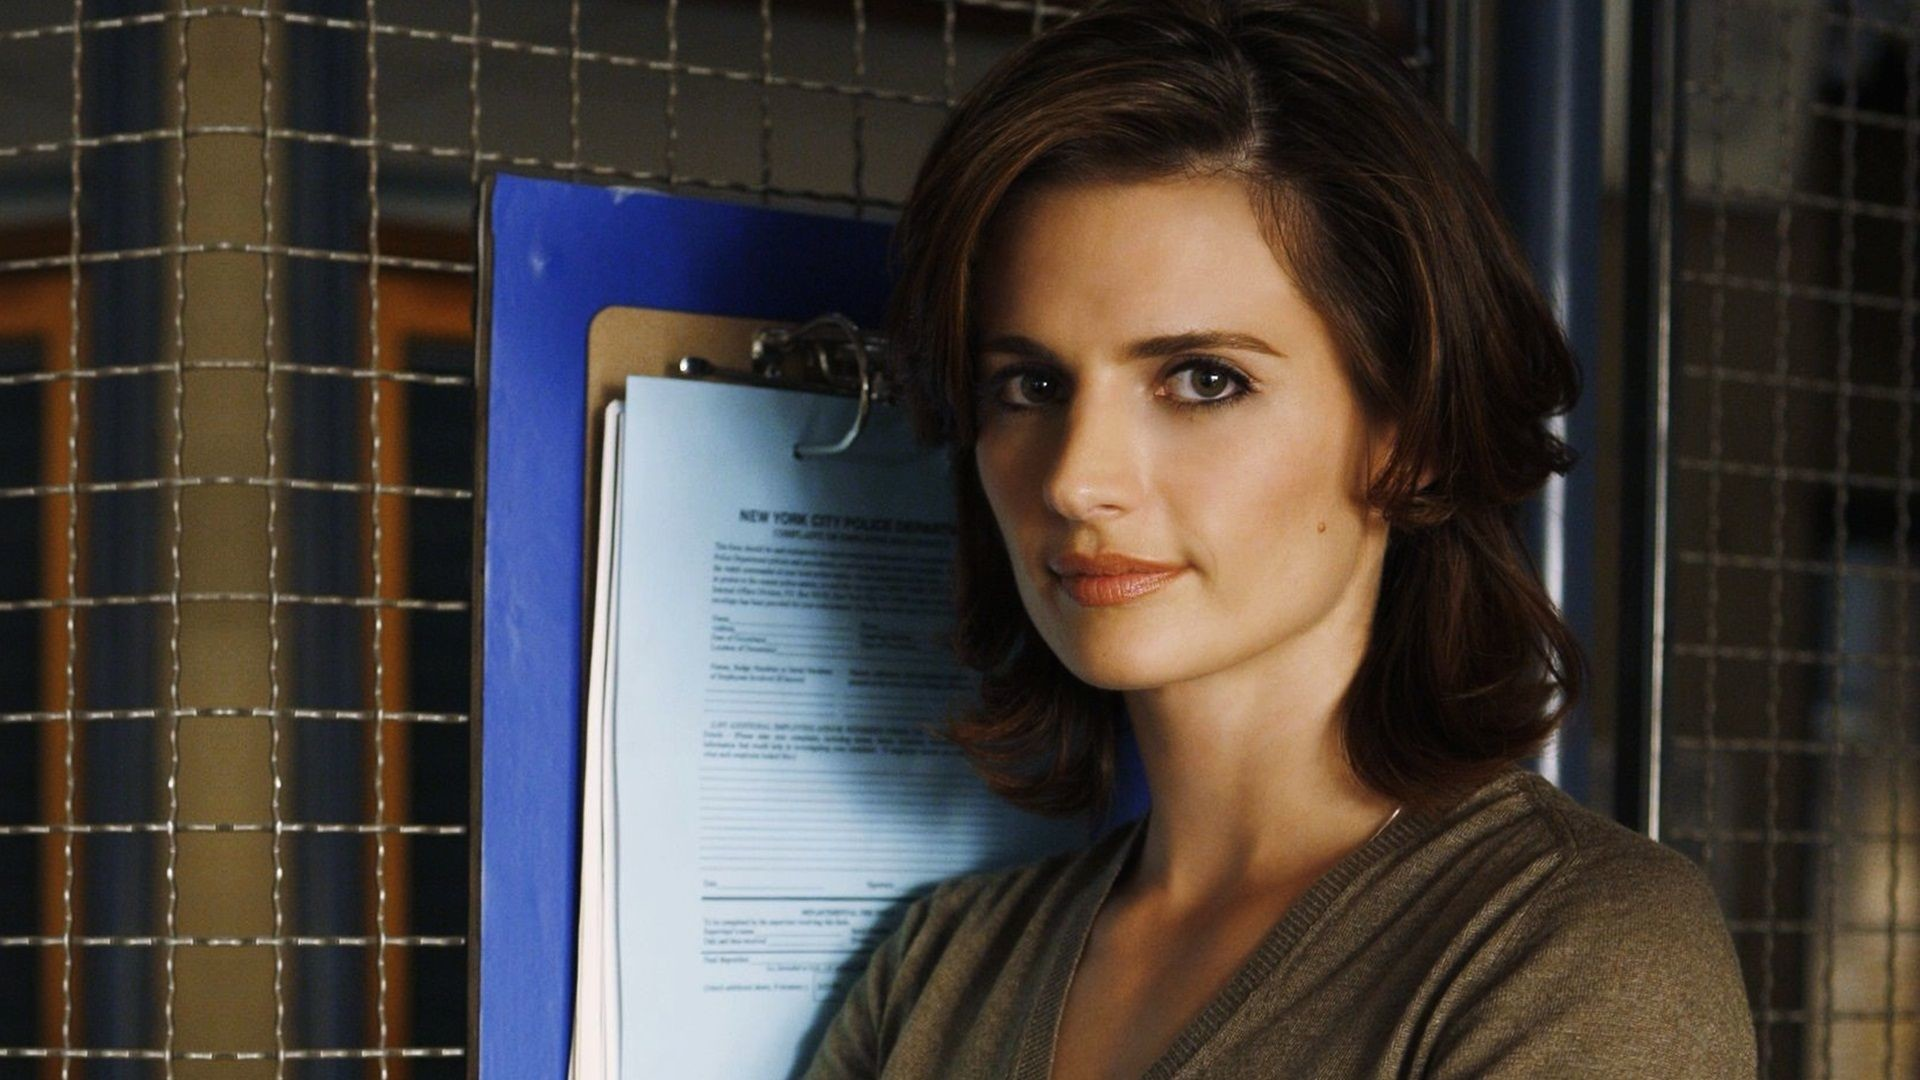 1920x1080 ... Stana Katic Wallpapers Hd Jpg. Download